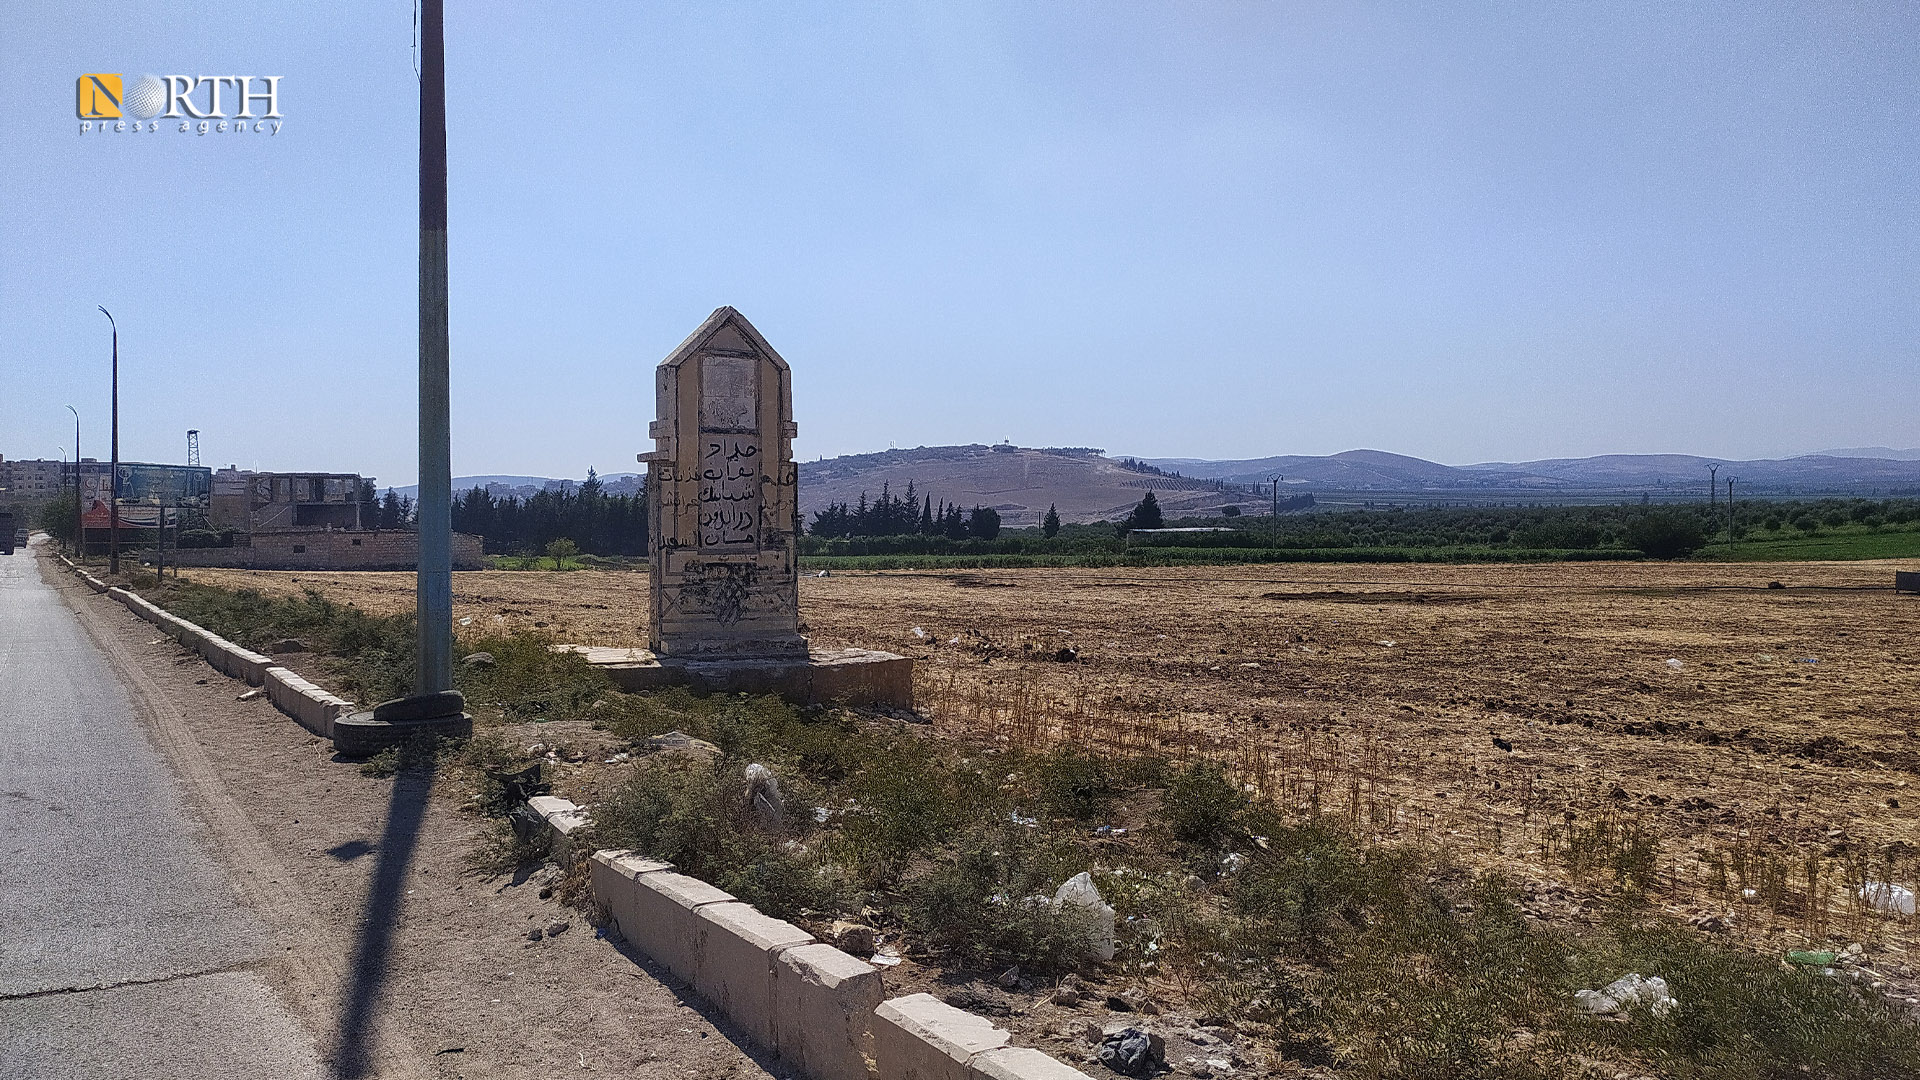 Entrance to the city of Afrin, northwest Syria – North Press